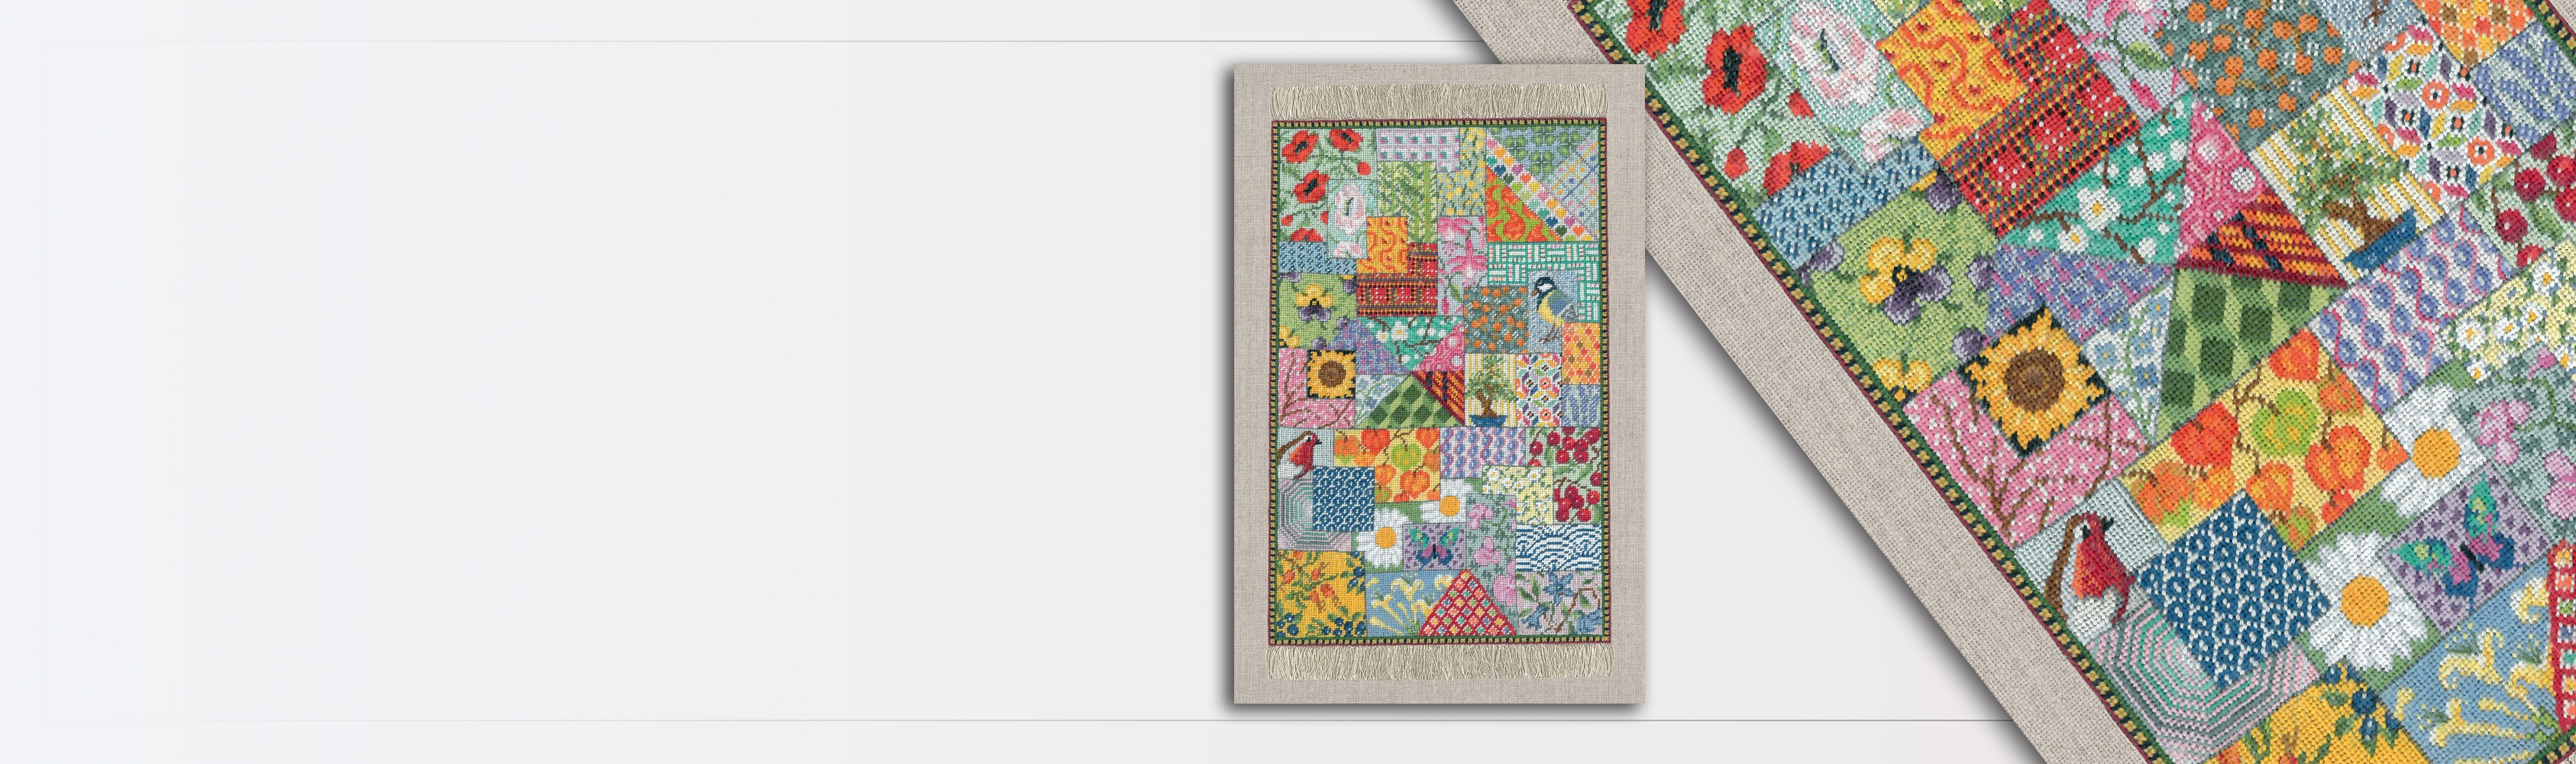 Carpet miniature Patchwork. Petit point kit. 3669 Le Bonheur des Dames